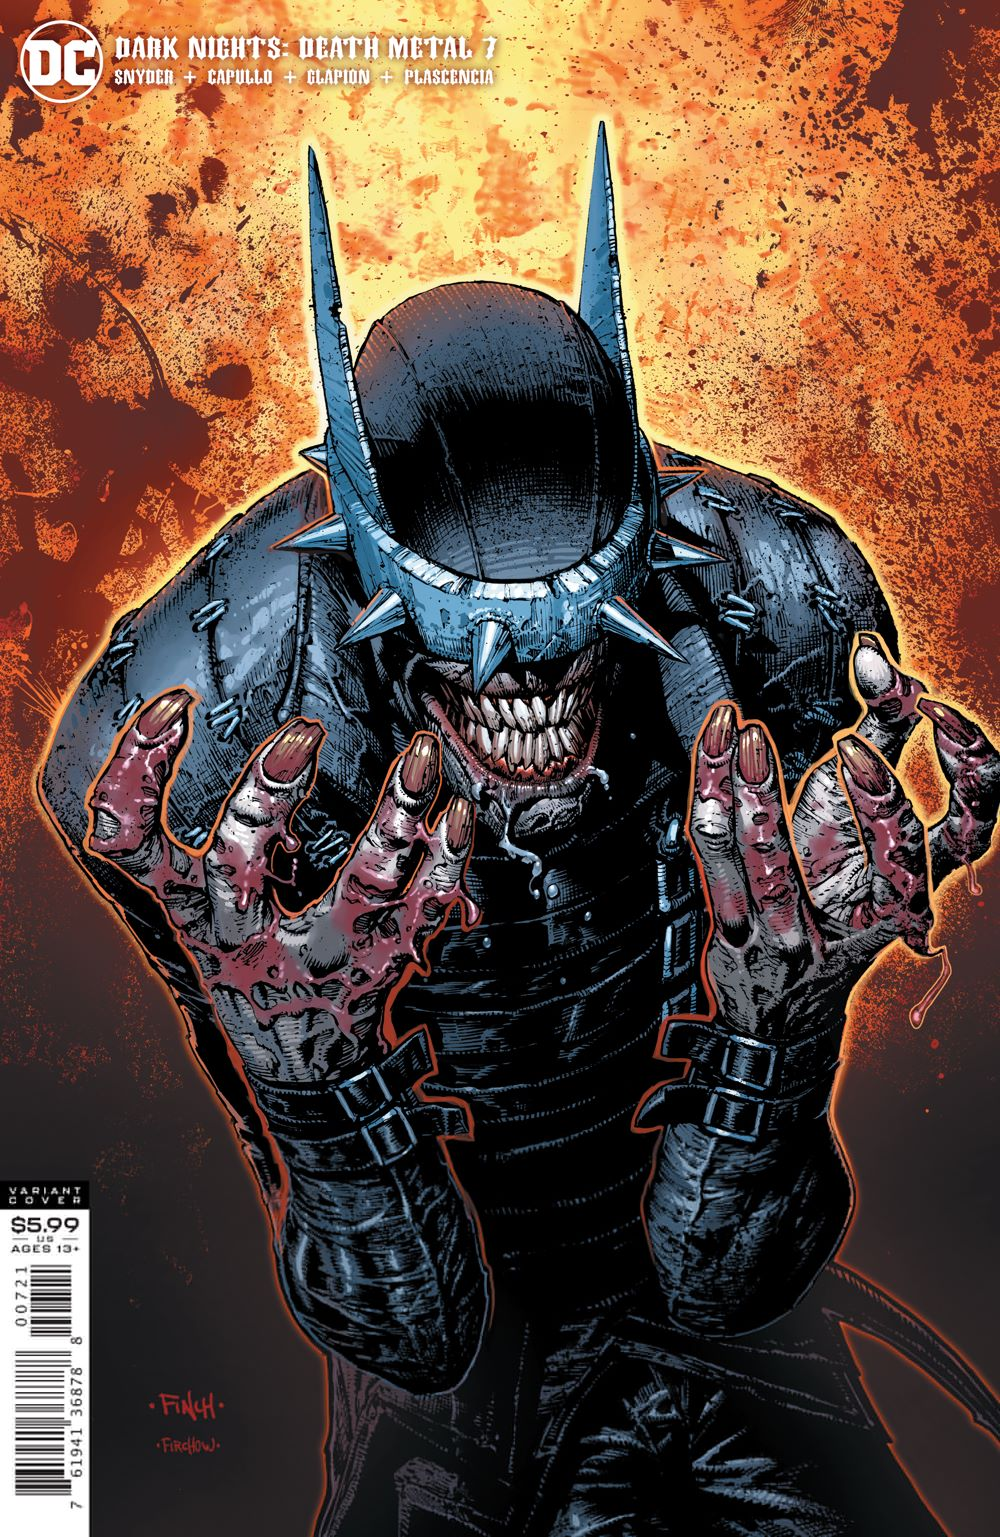 1020DC044 ComicList: New Comic Book Releases List for 01/06/2021